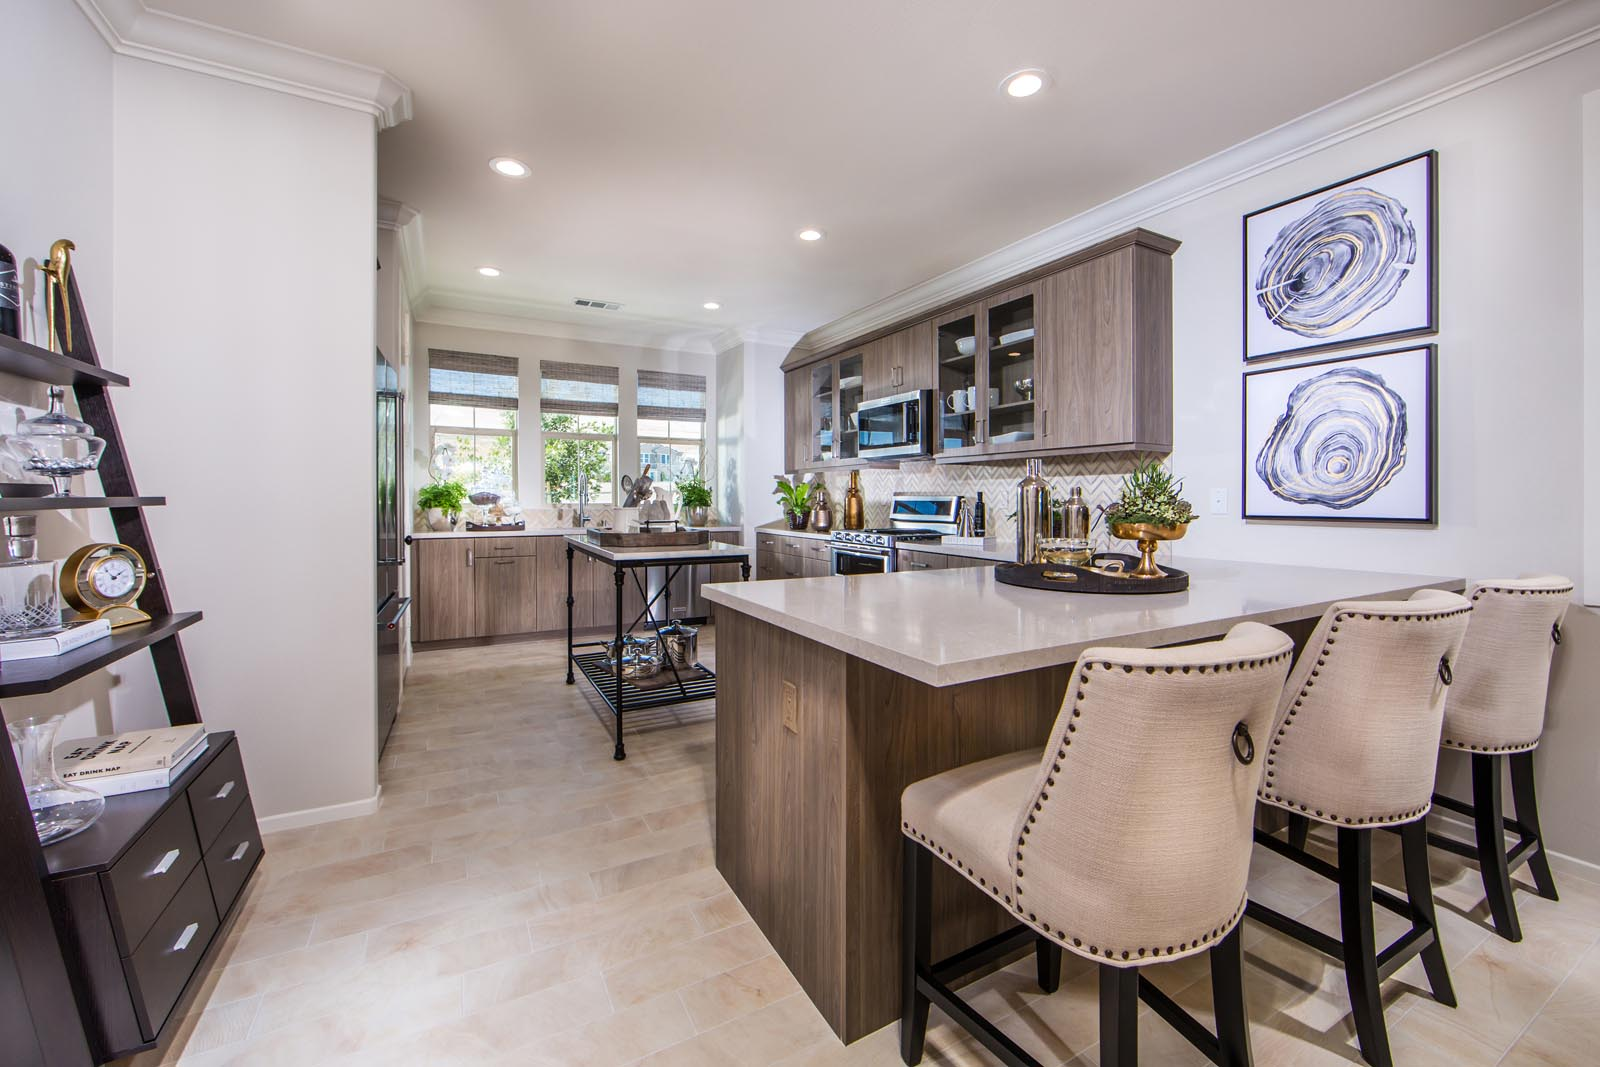 Residence 3 Kitchen | Prado at the Village of Escaya in Chula Vista, CA | Brookfield Residential